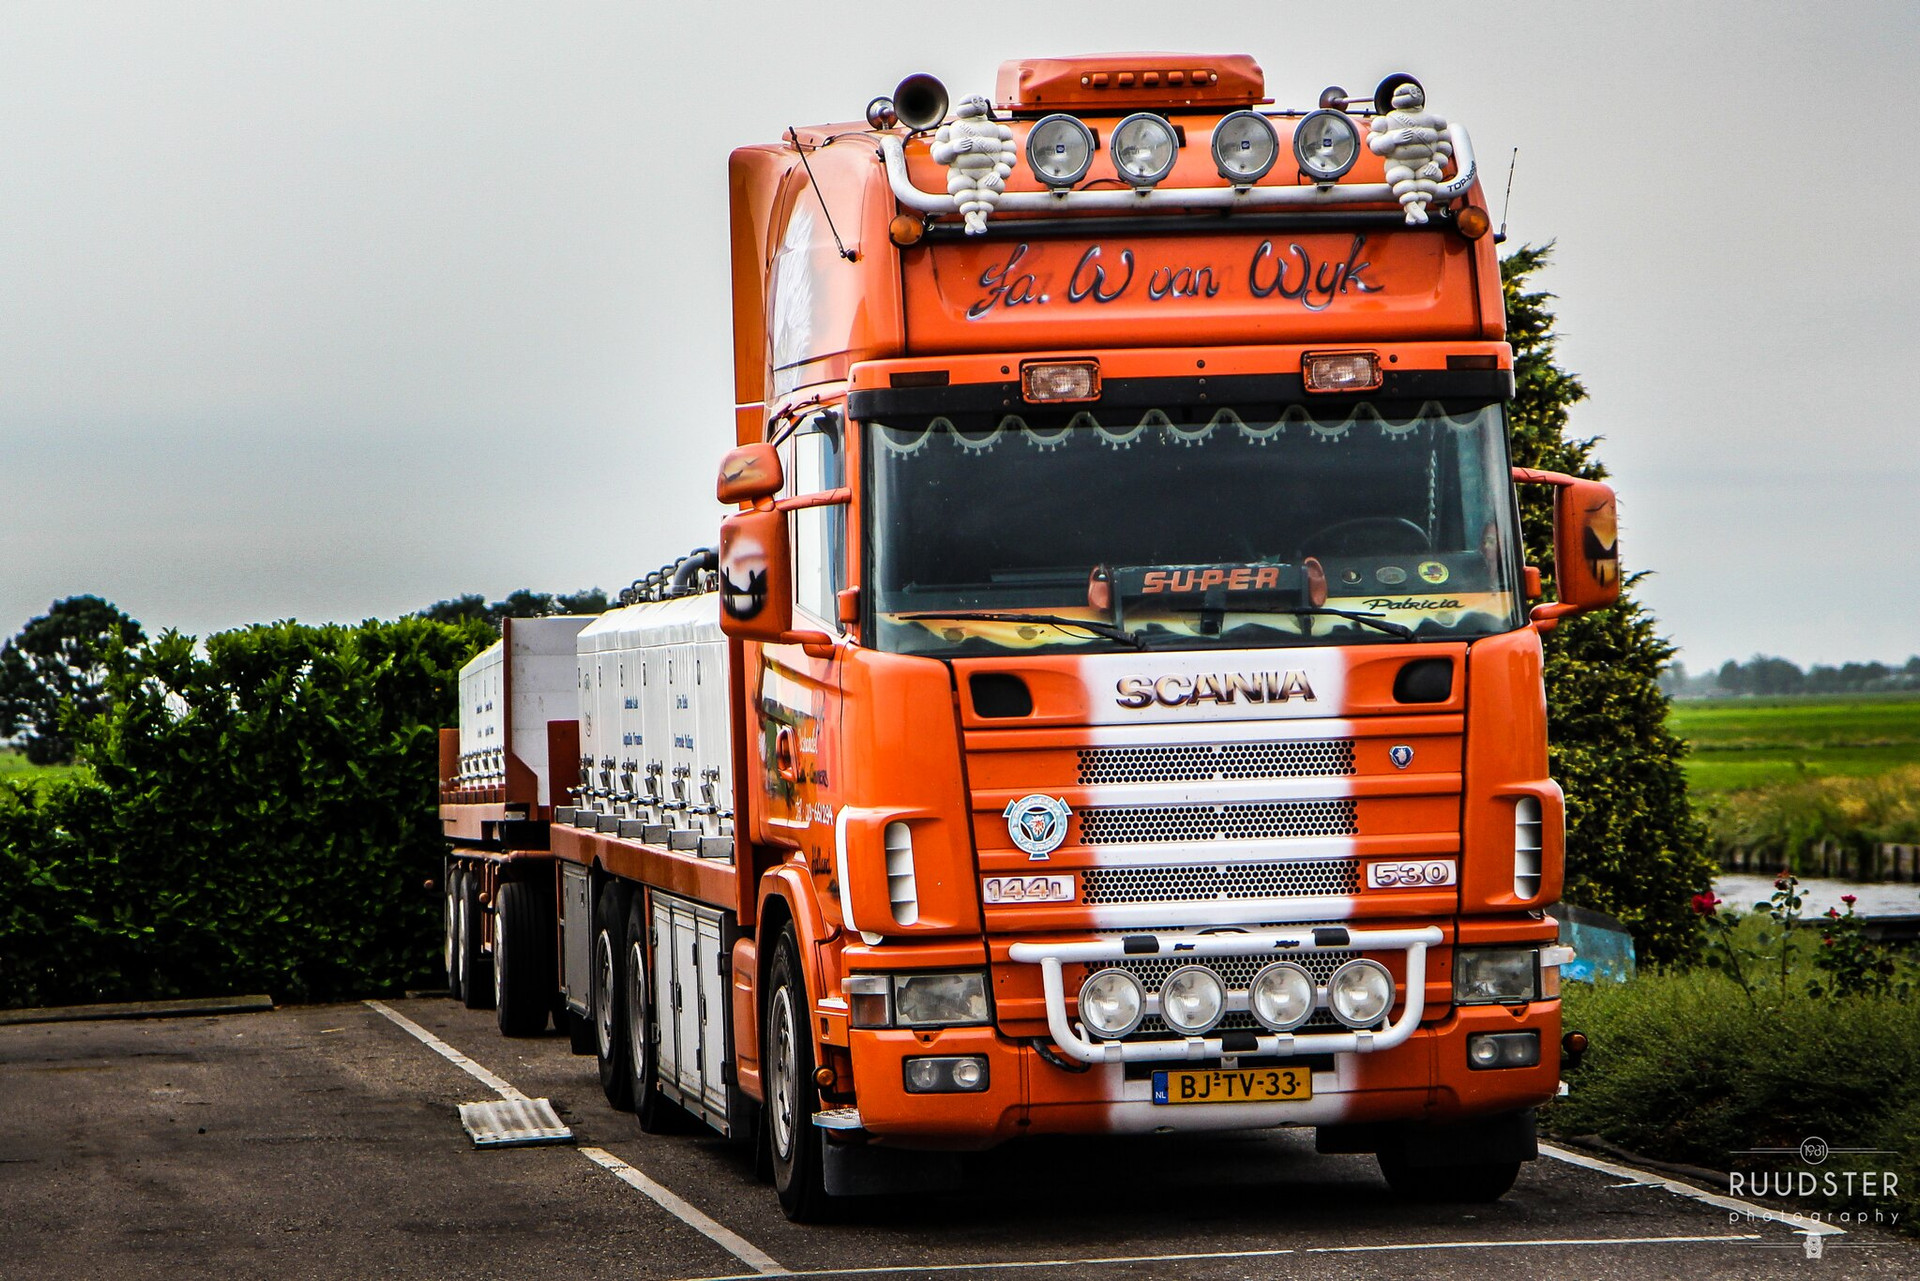 BJ-TV-33 | Build: 2001 - SCANIA R.530